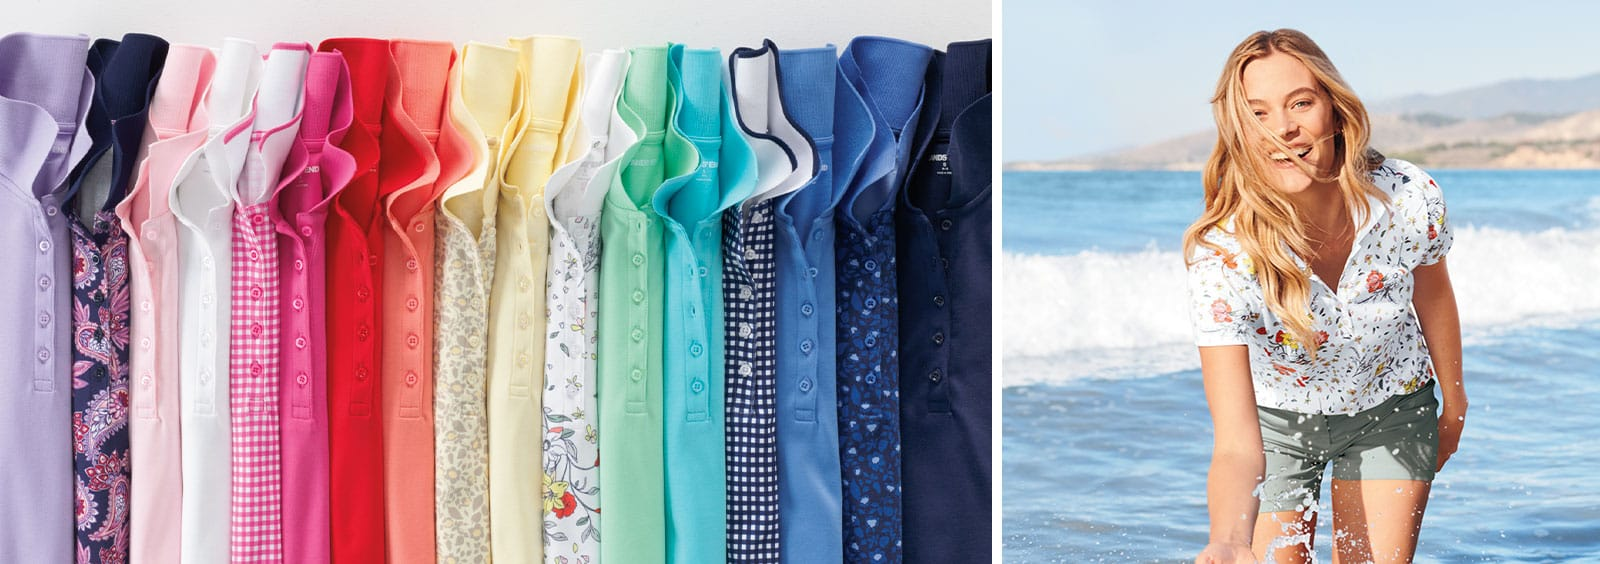 Polo Basics: What to Know and What to Look For With Your Polo Shirts